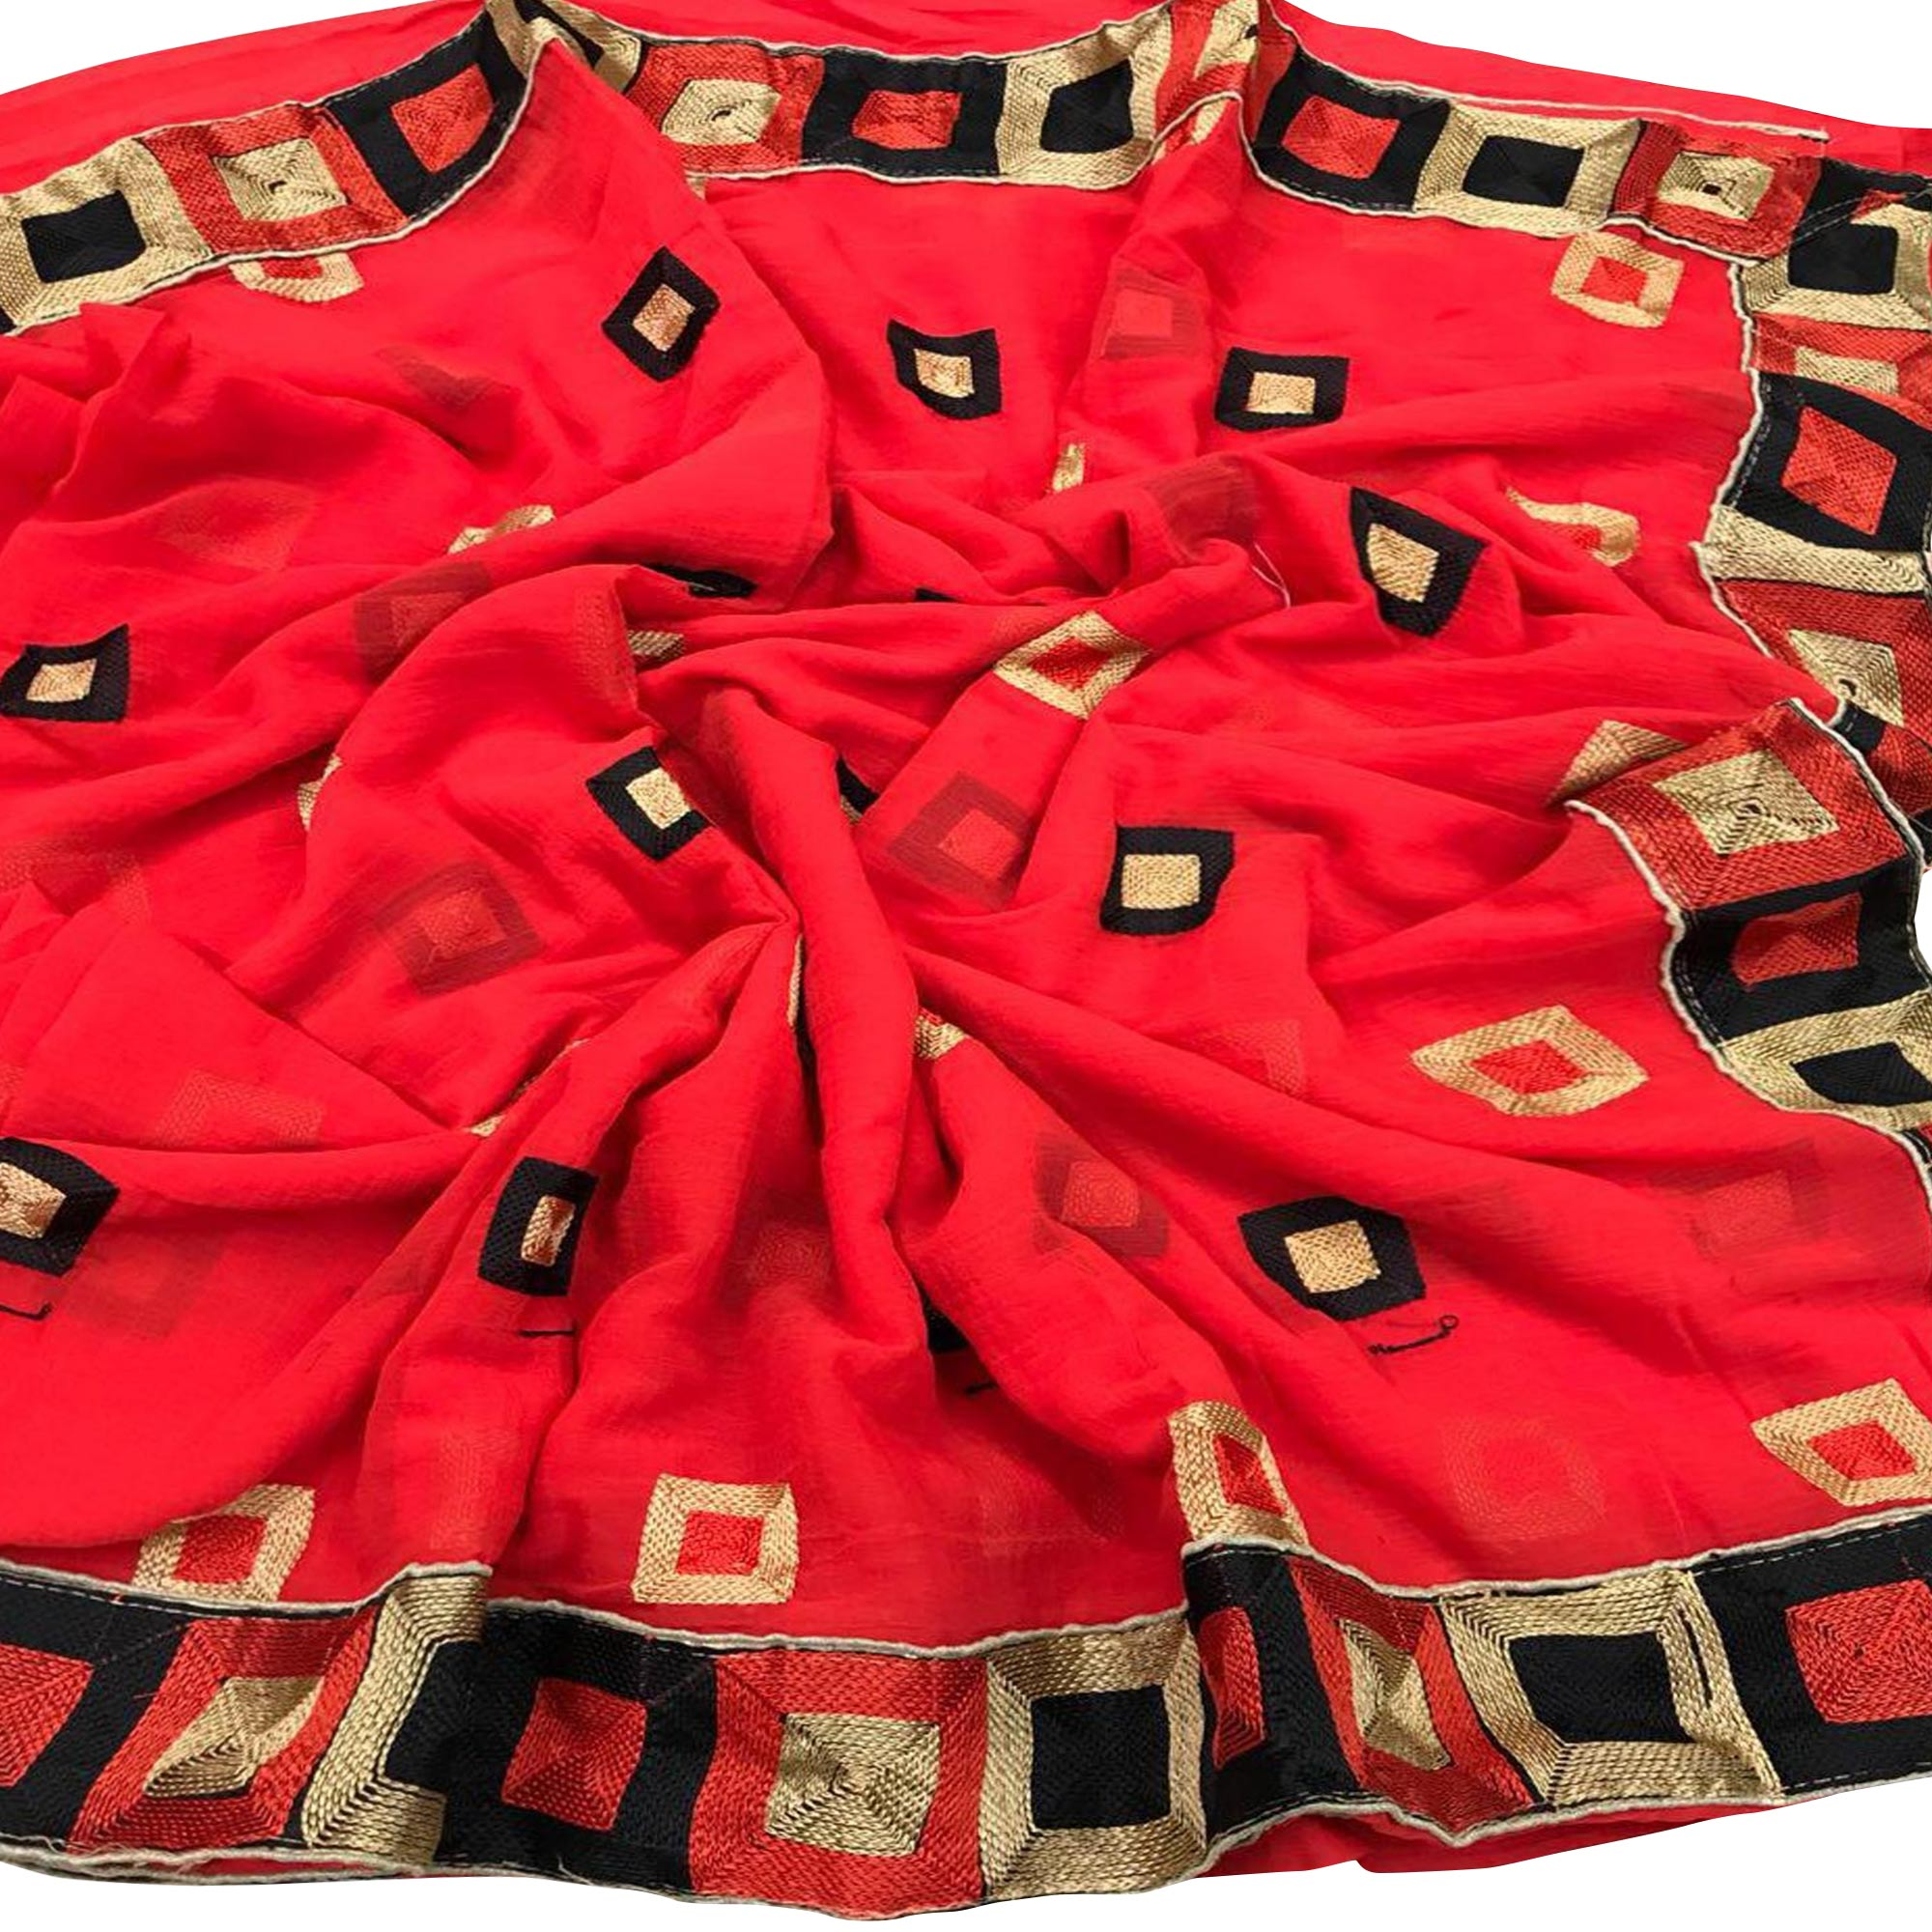 Elegant Partywear Embroidered Chiffon Saree - Pack of 2